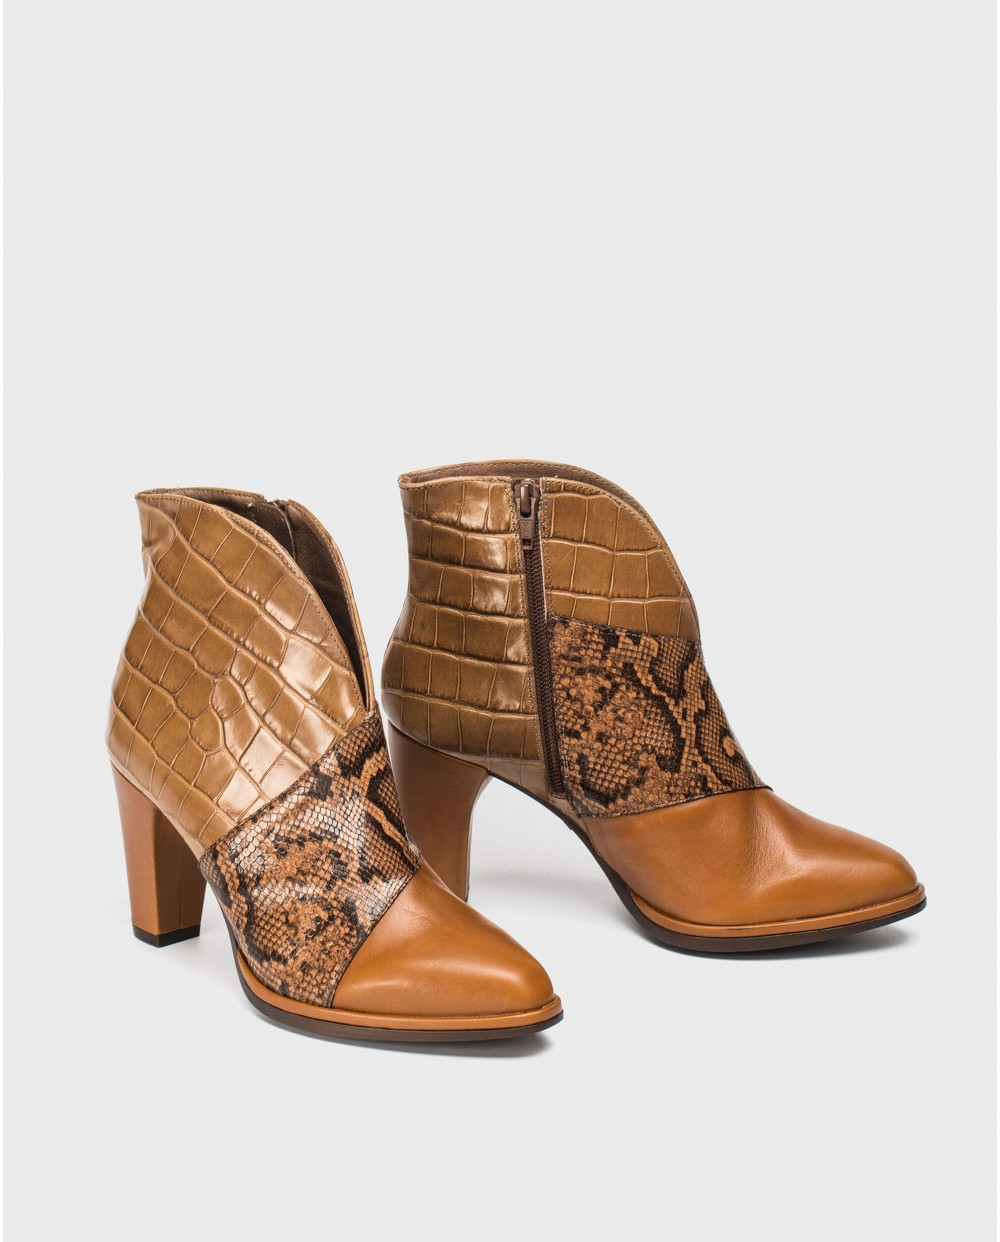 Wonders-Ankle Boots-Three-color ankle boot